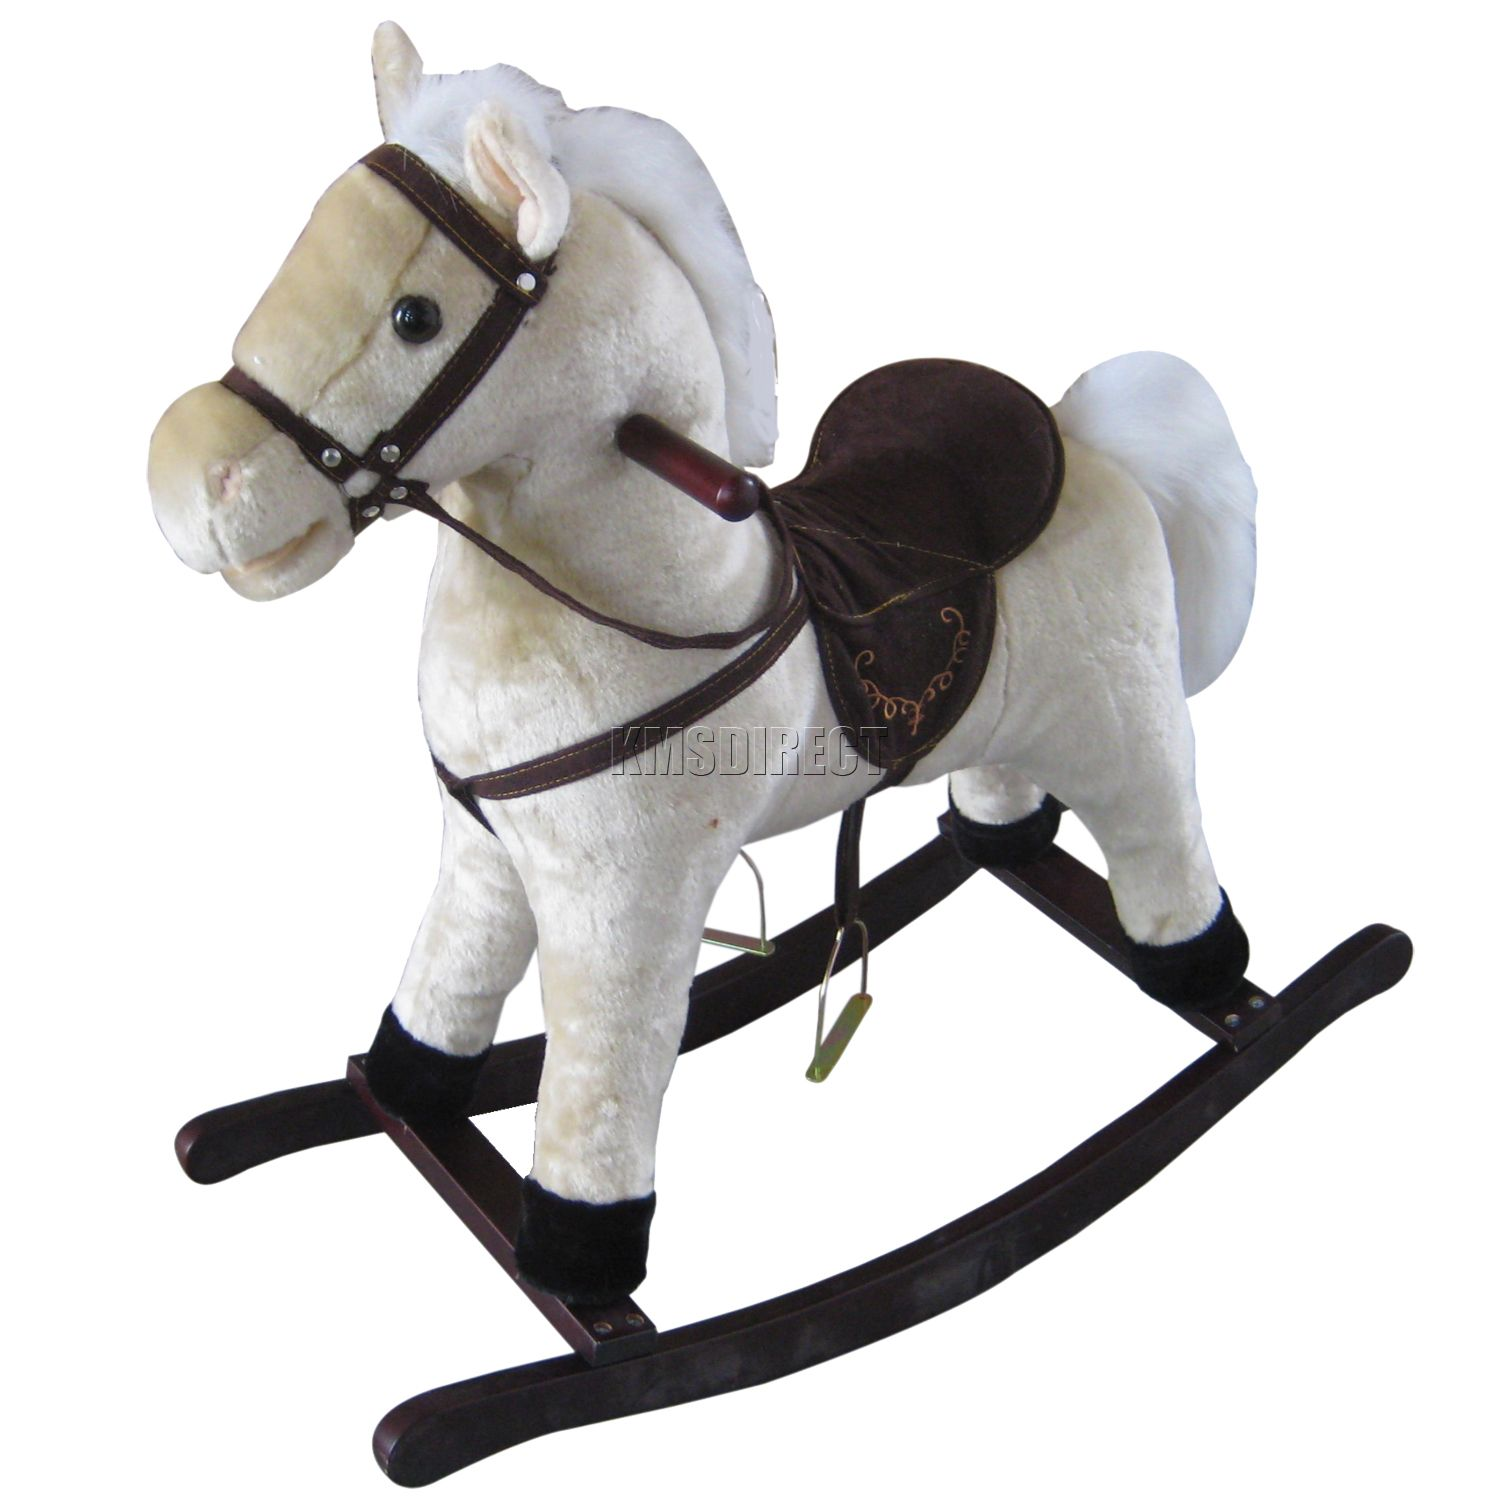 Portrayal of Best Rocking Horses For Toddlers